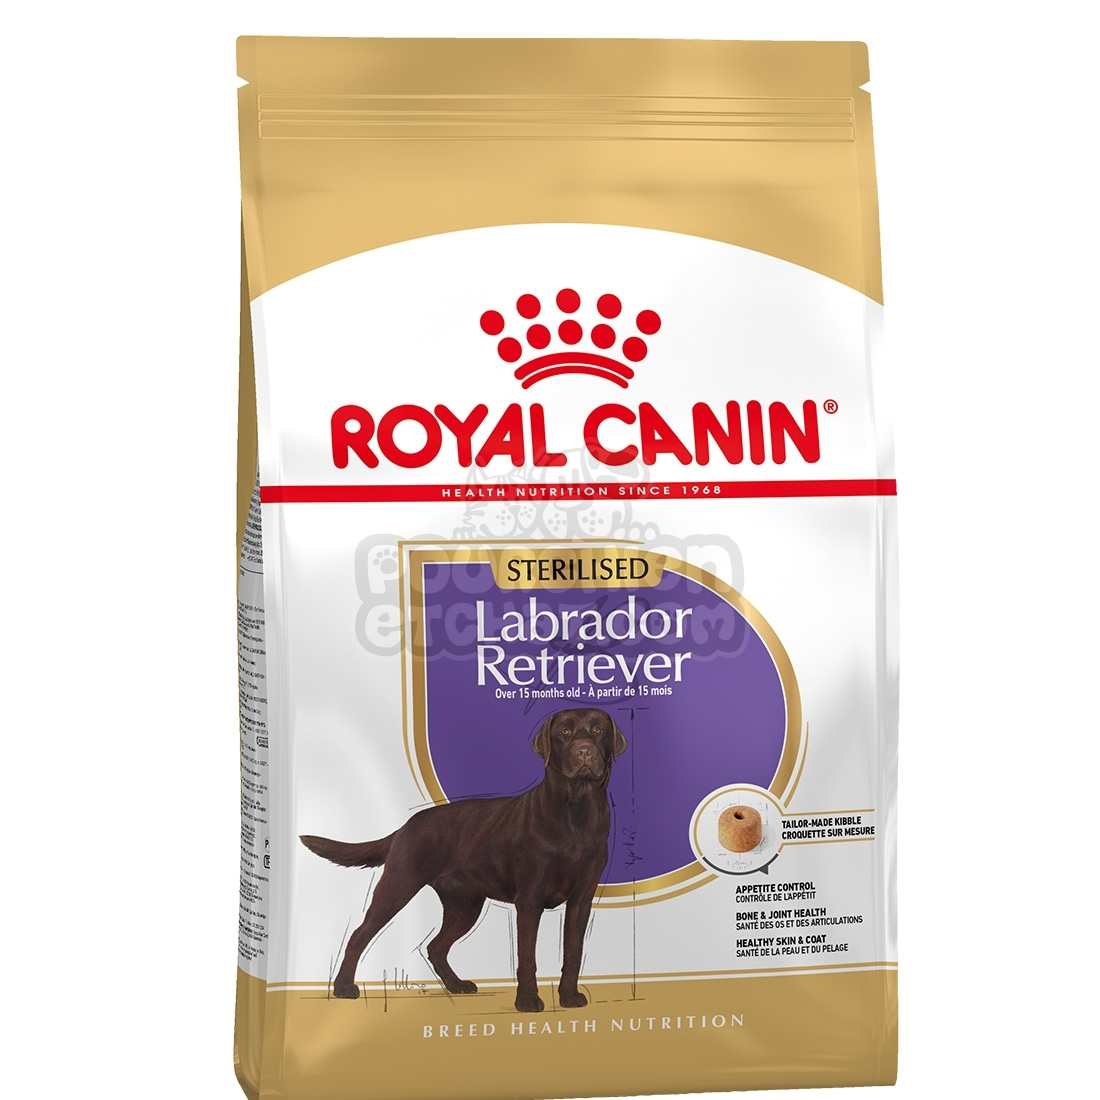 royal canin maxi breed labrador retriever sterilised adult. Black Bedroom Furniture Sets. Home Design Ideas